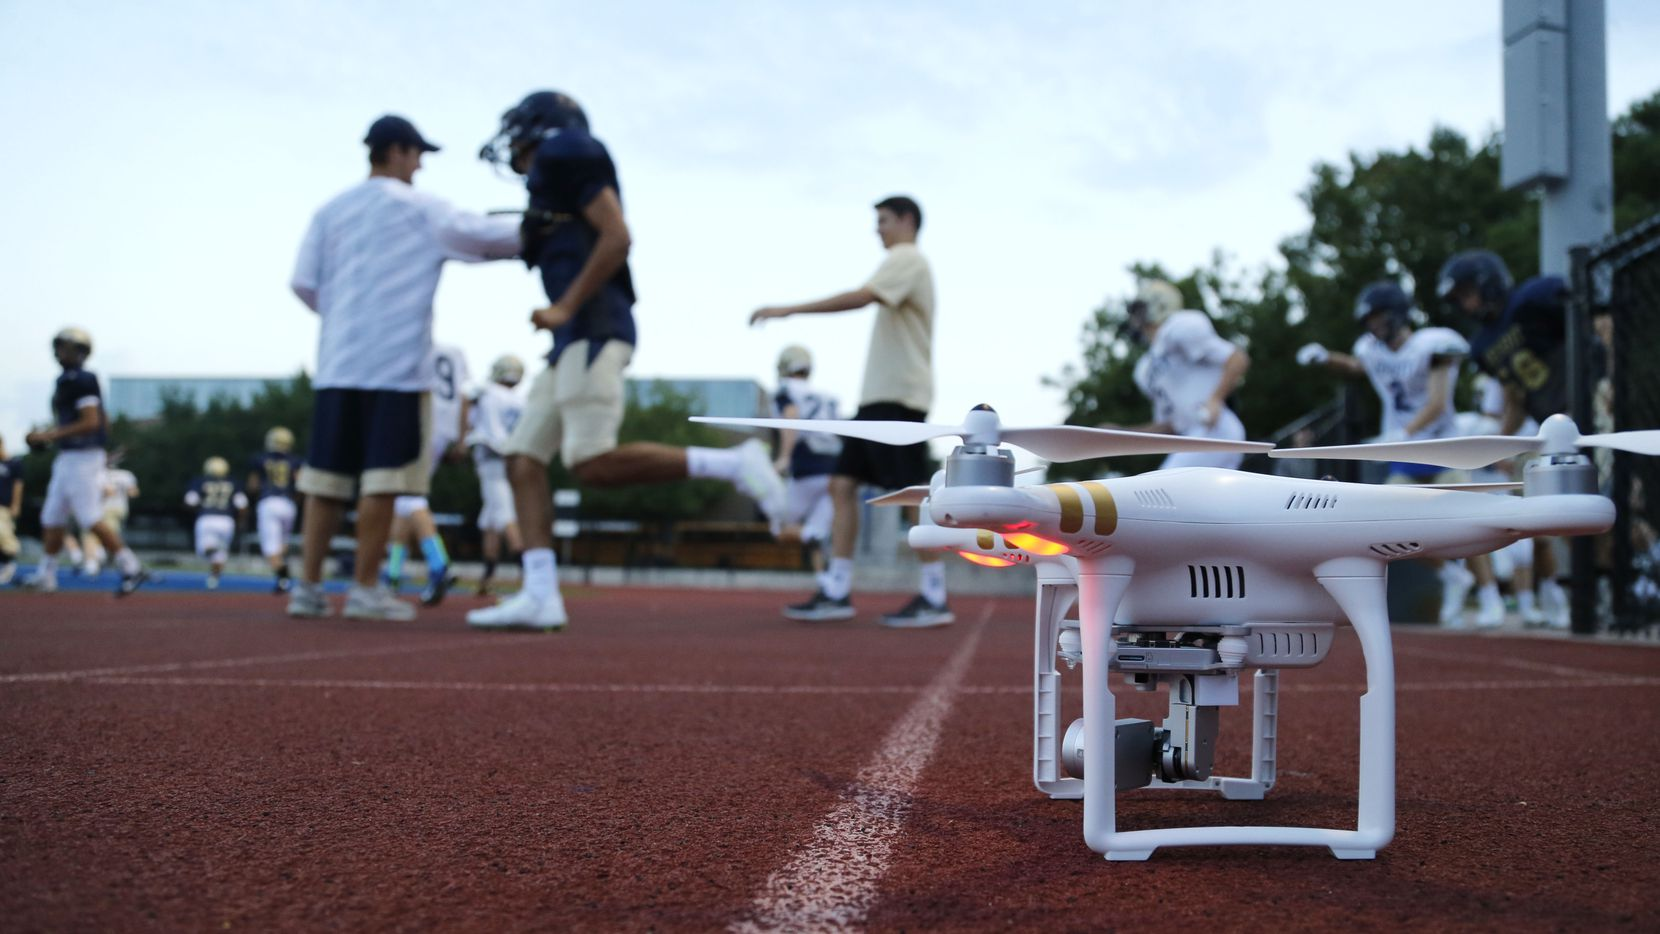 Jesuit football played take the field as a drone is powered up before football practice at Jesuit College Preparatory School of Dallas in Dallas, on Tuesday, August 25, 2015. (Vernon Bryant/The Dallas Morning News)